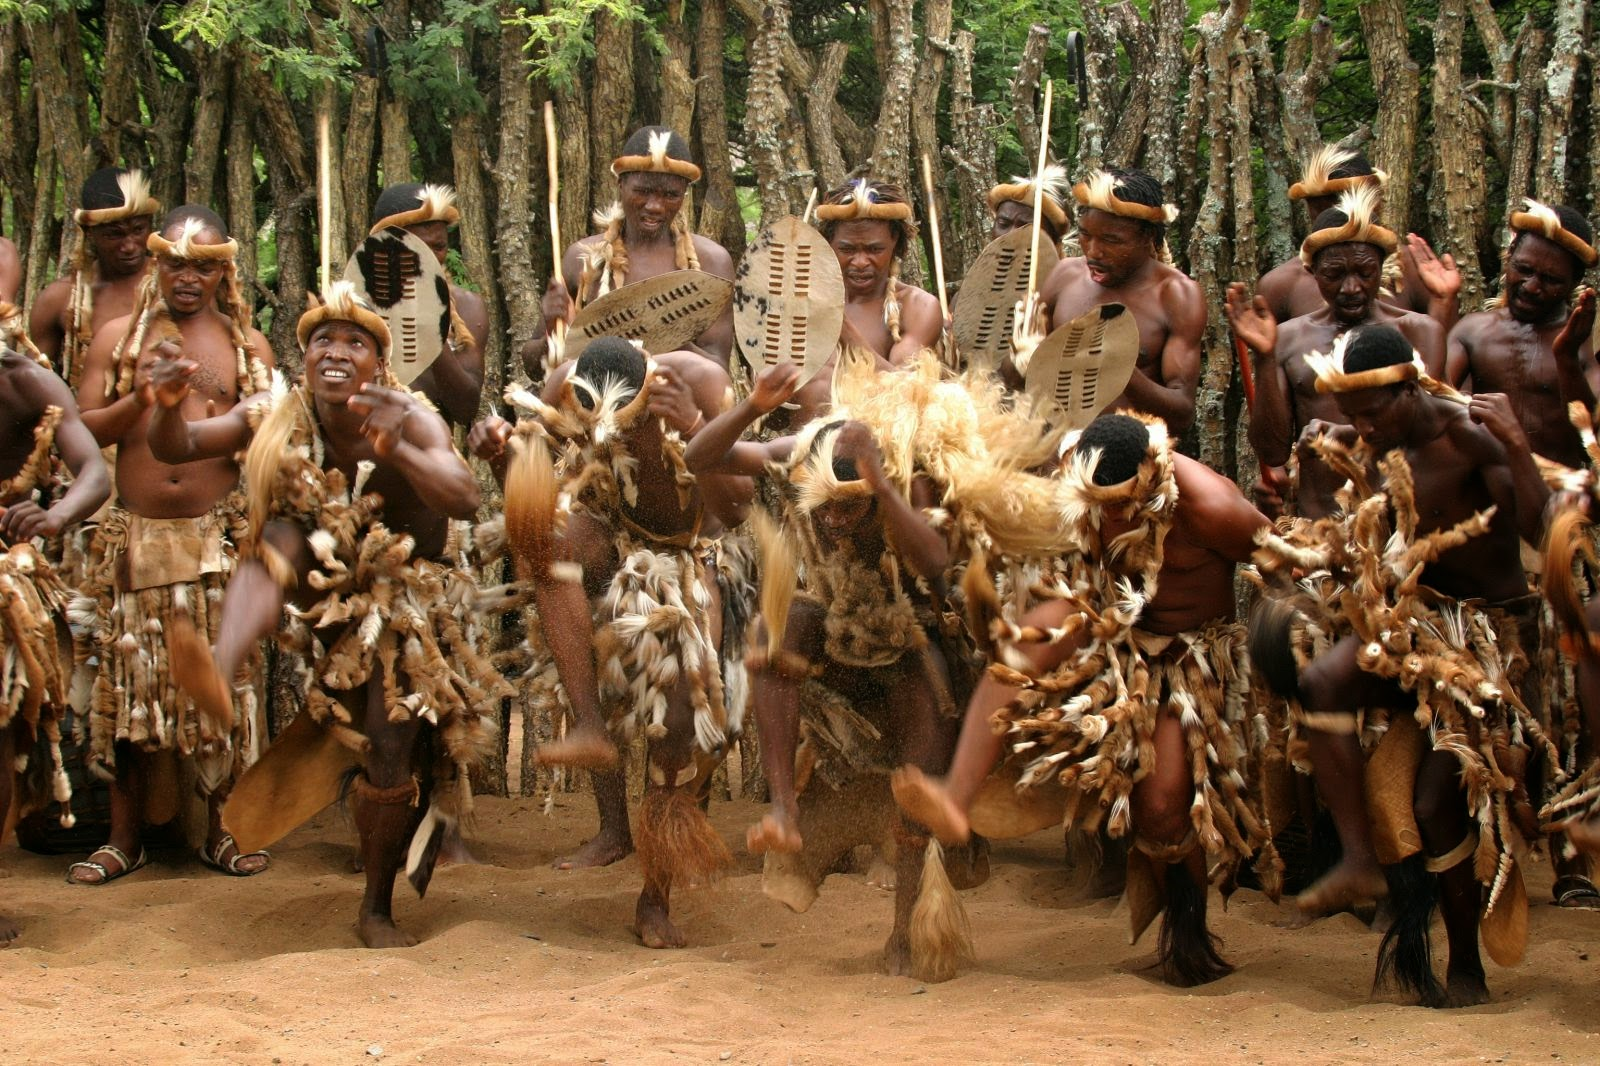 the zulu tribe Discover more about the zulu culture at thanda safari situated in the heart of the zulu kingdom of kzn learn about the history and traditions of the.